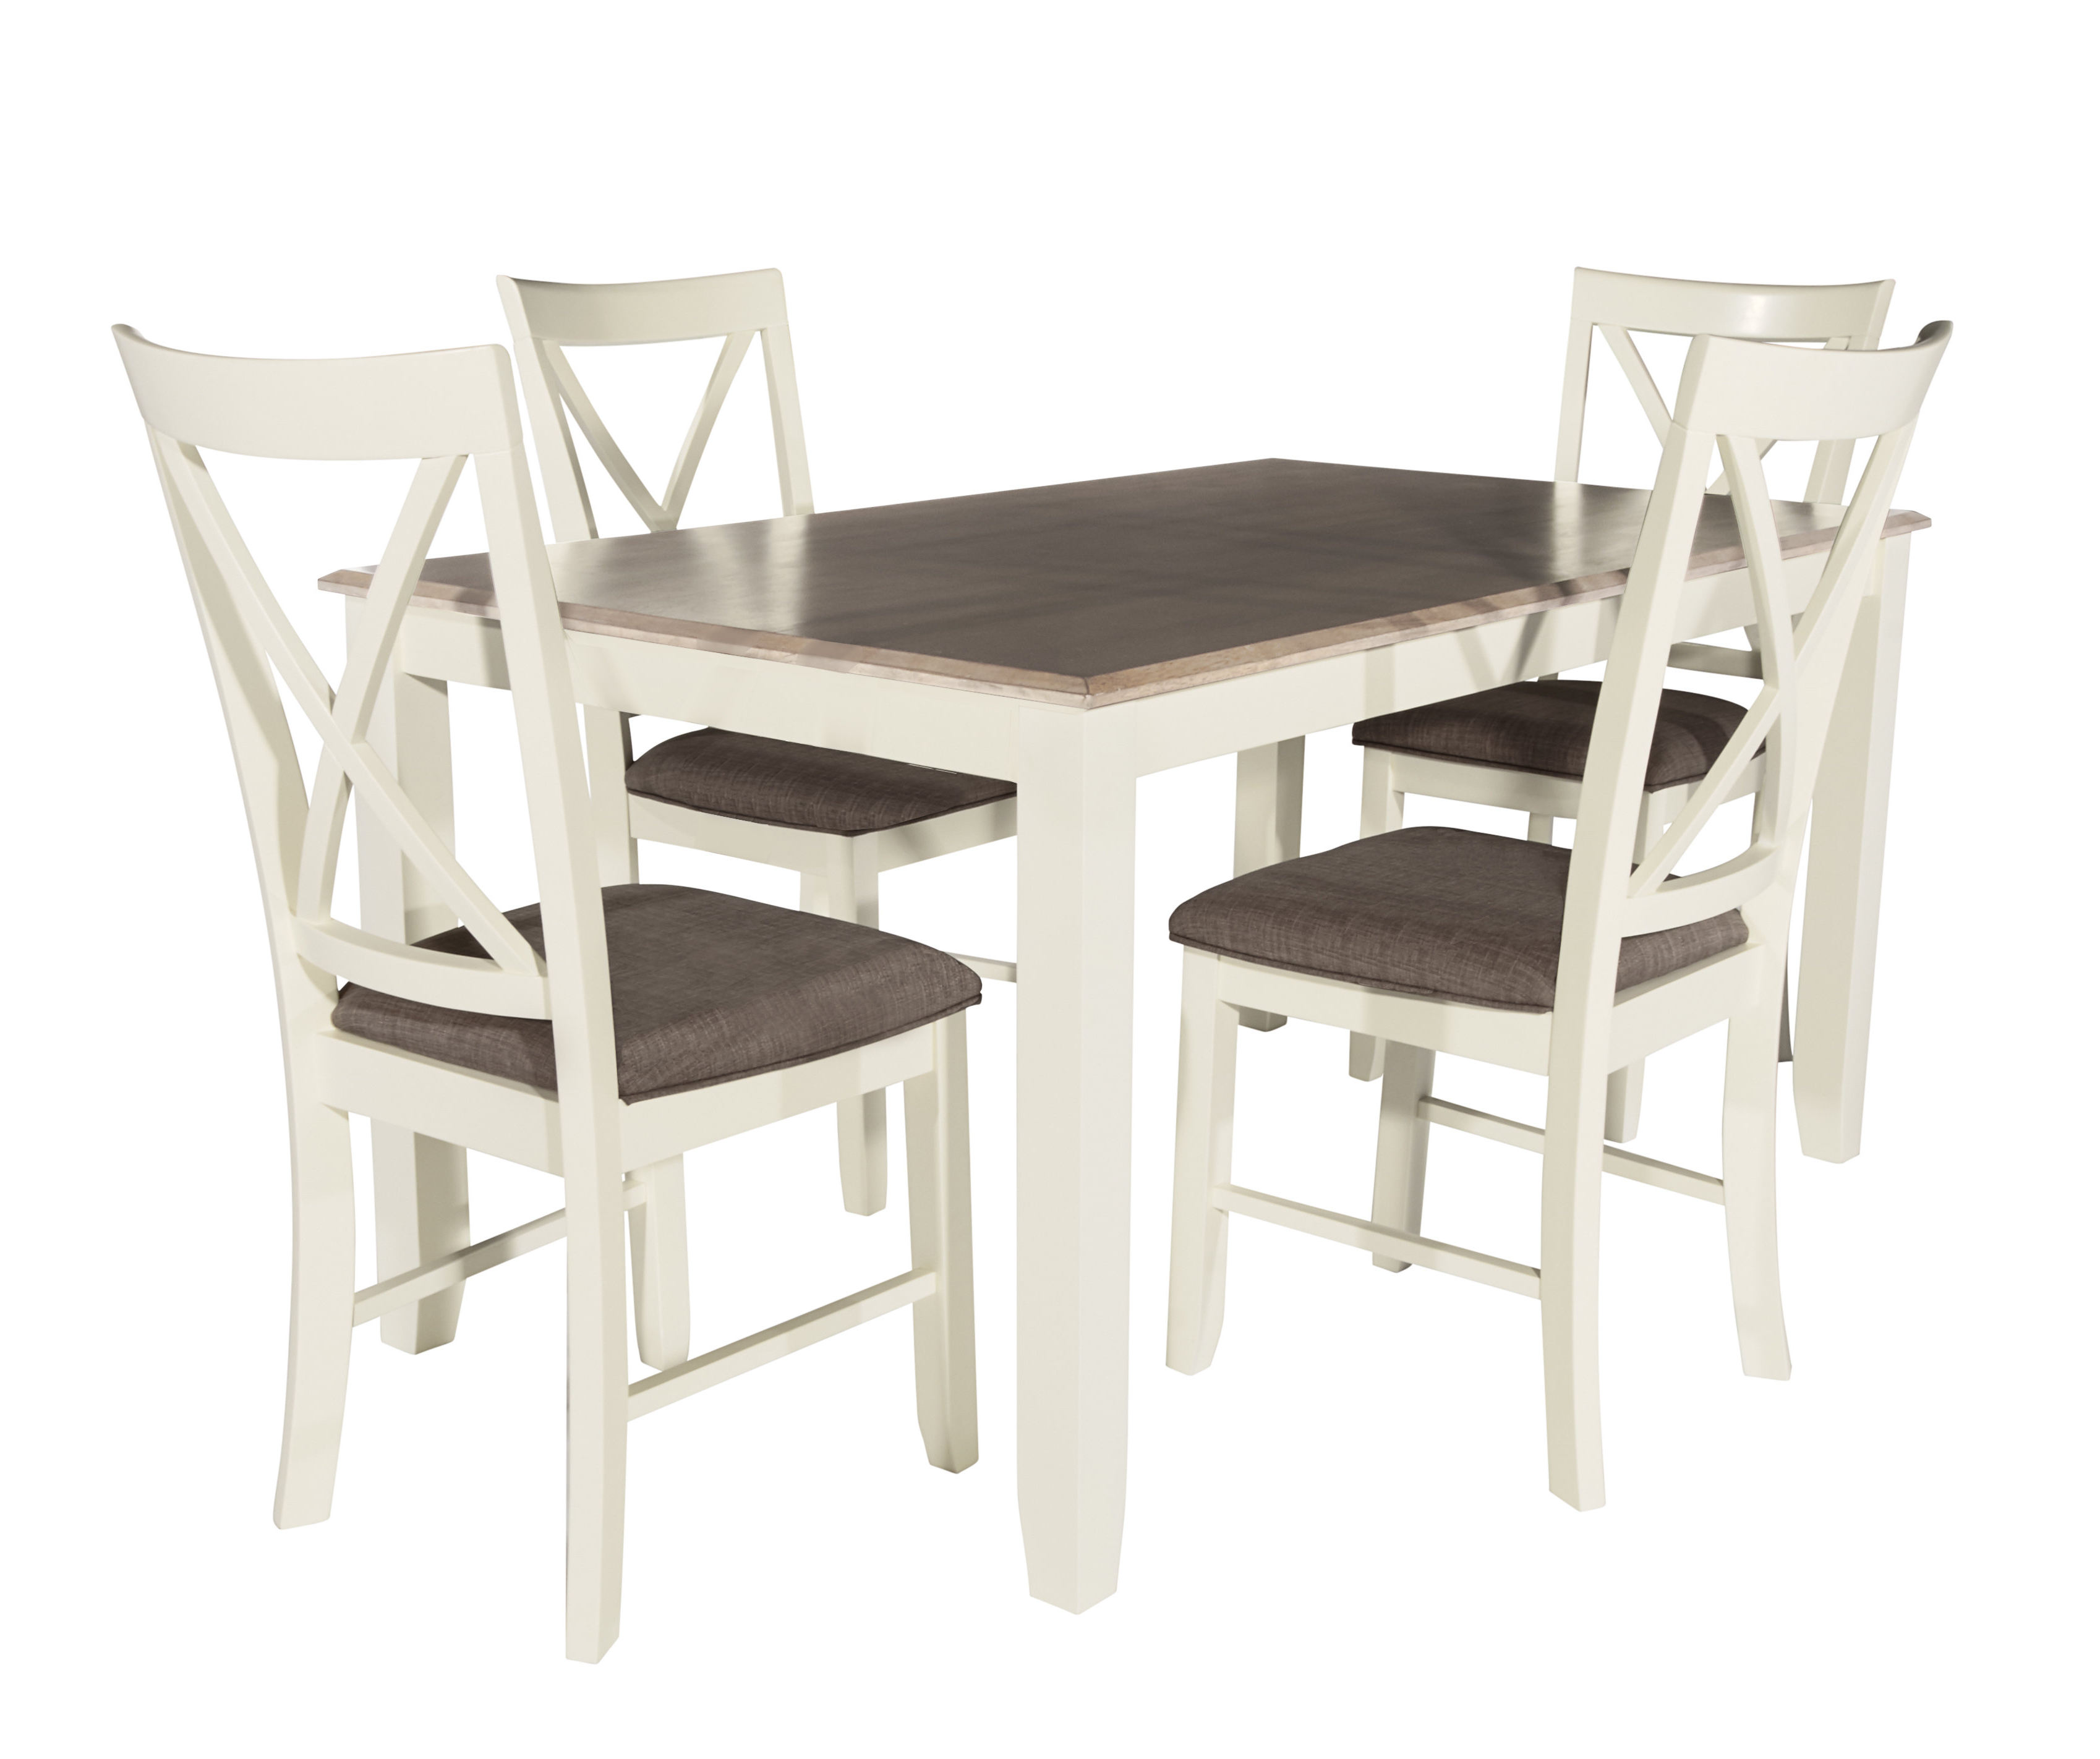 Fashionable Laurel Foundry Modern Farmhouse Amaury 5 Piece Dining Set & Reviews Throughout 5 Piece Dining Sets (View 14 of 25)